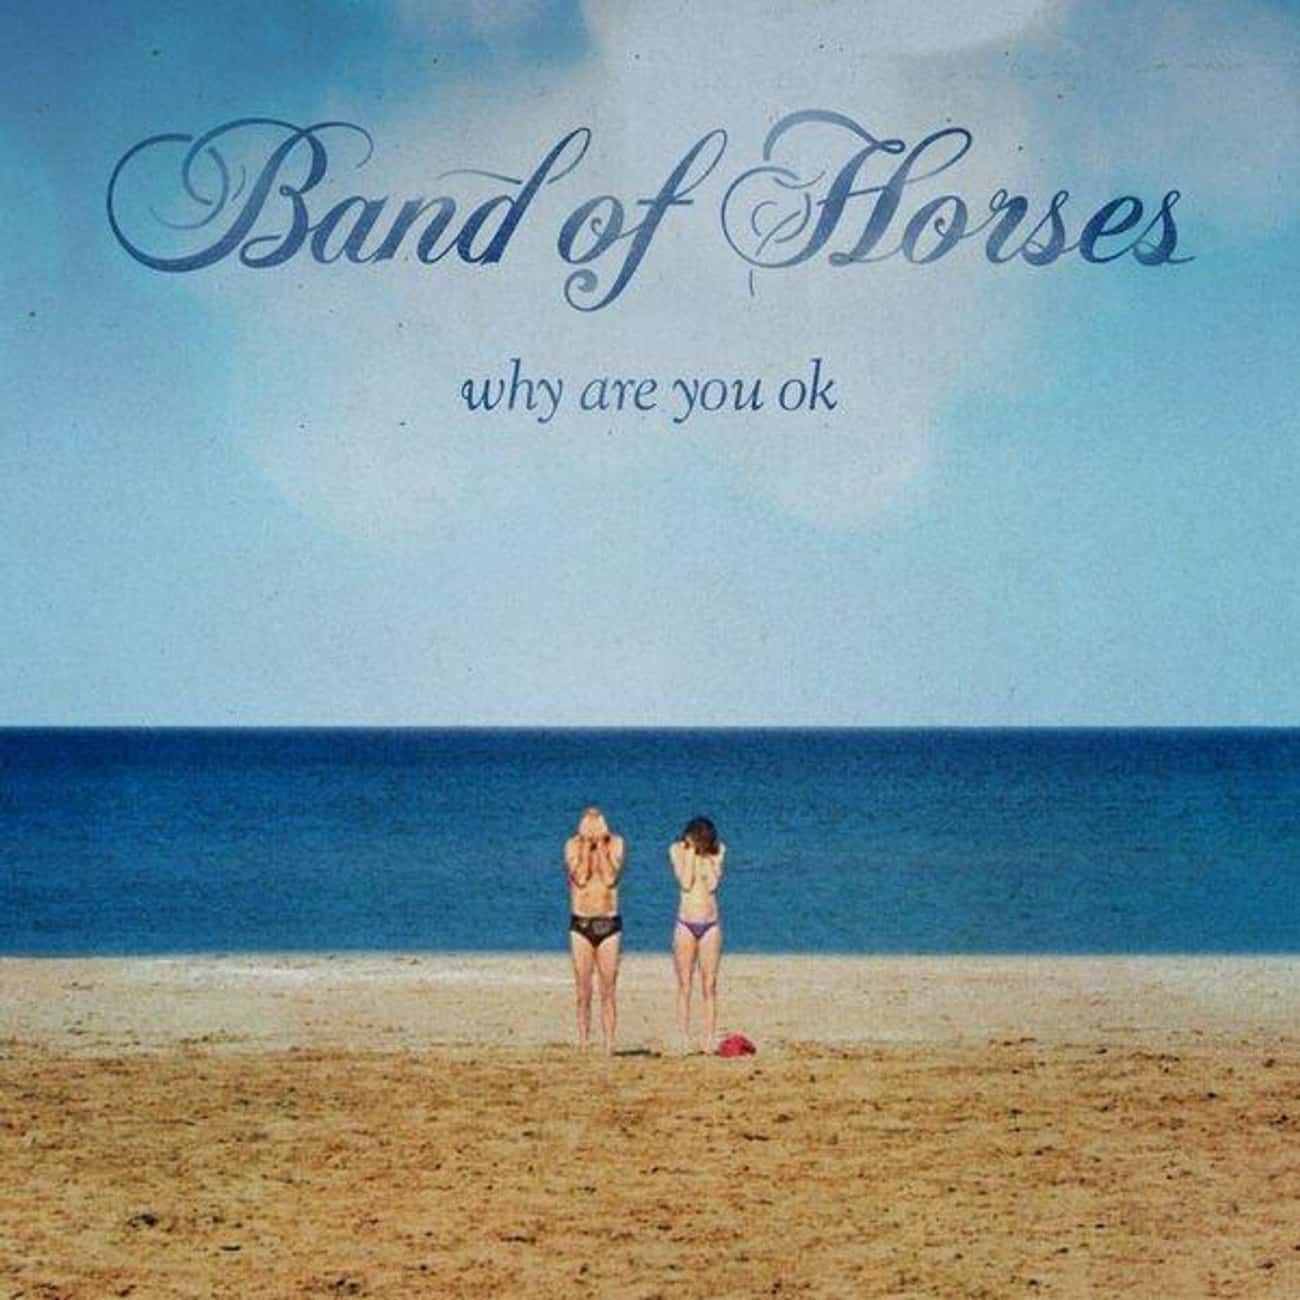 Why Are You OK is listed (or ranked) 3 on the list The Best Band of Horses Albums, Ranked